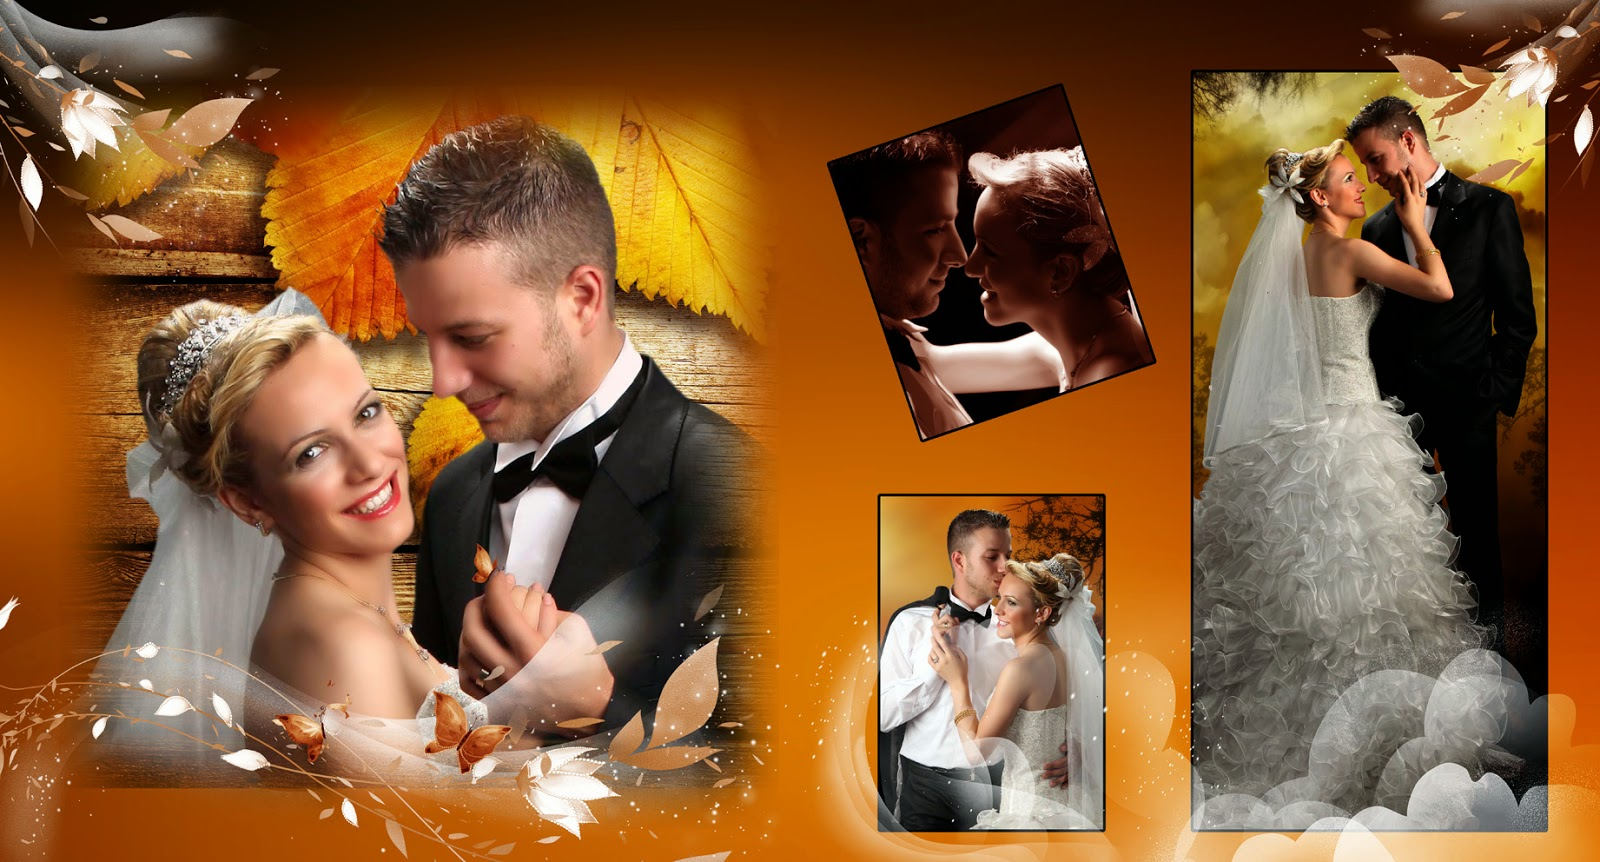 Template Psd casamento photoshop